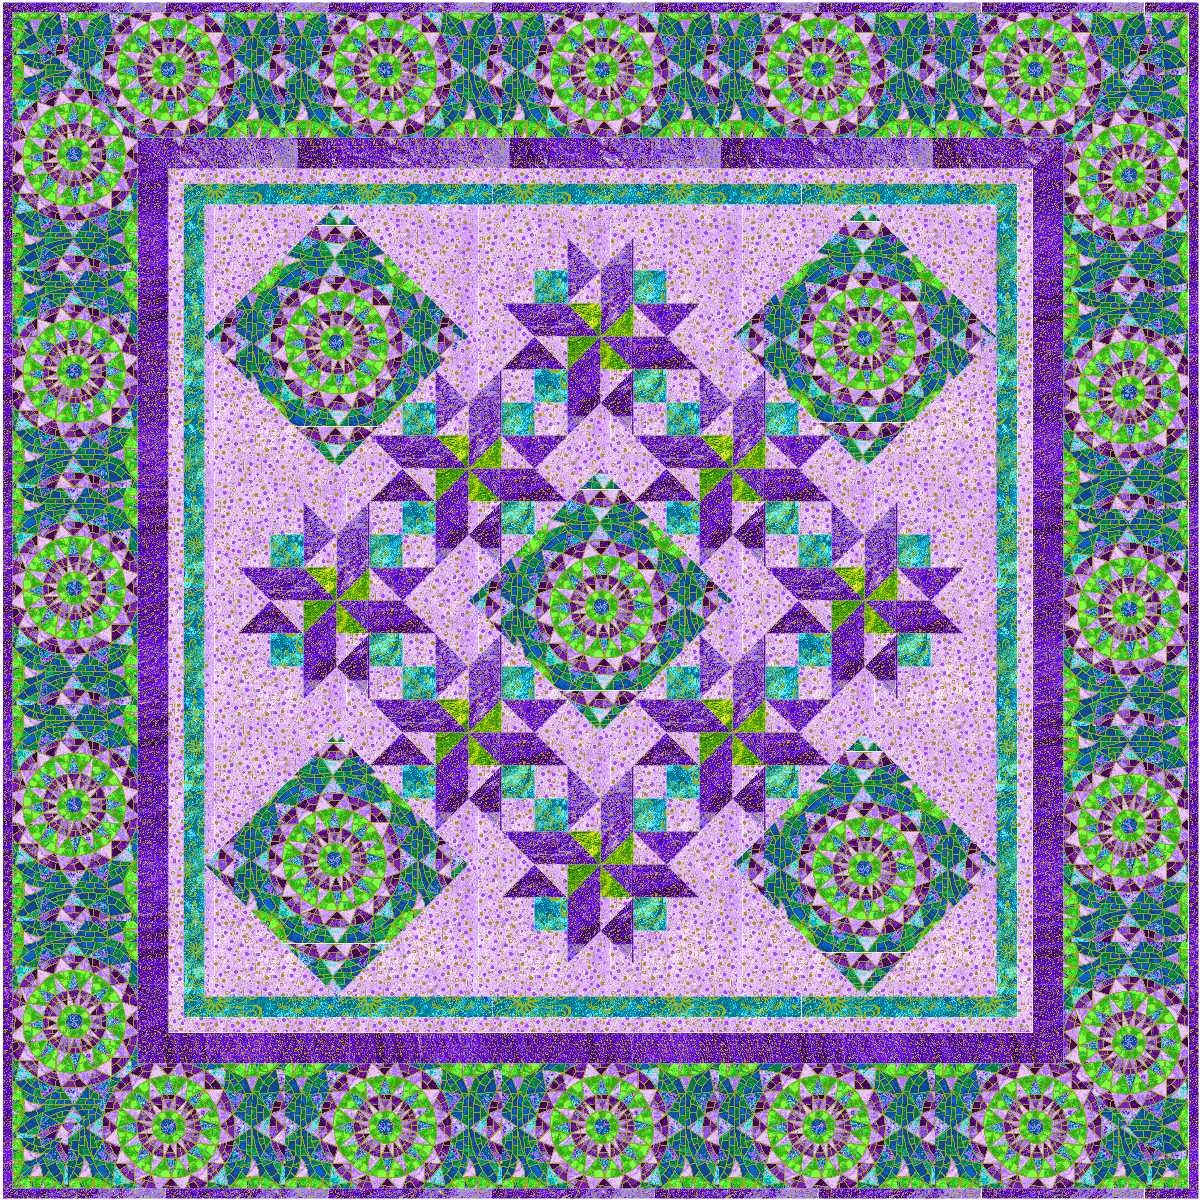 Quilt Pattern Using Focus Fabric : Fabric of My Life: